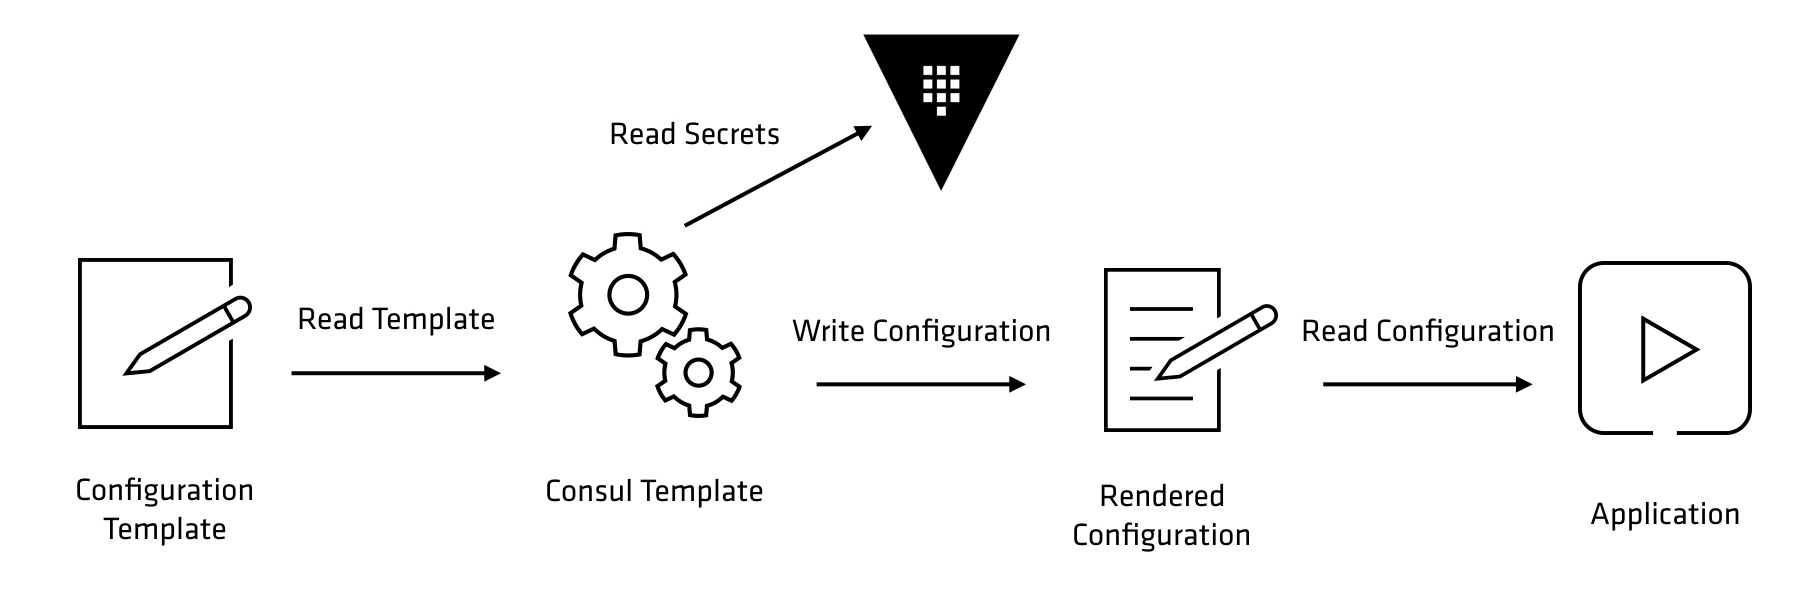 Consul Template for Dynamic Secrets